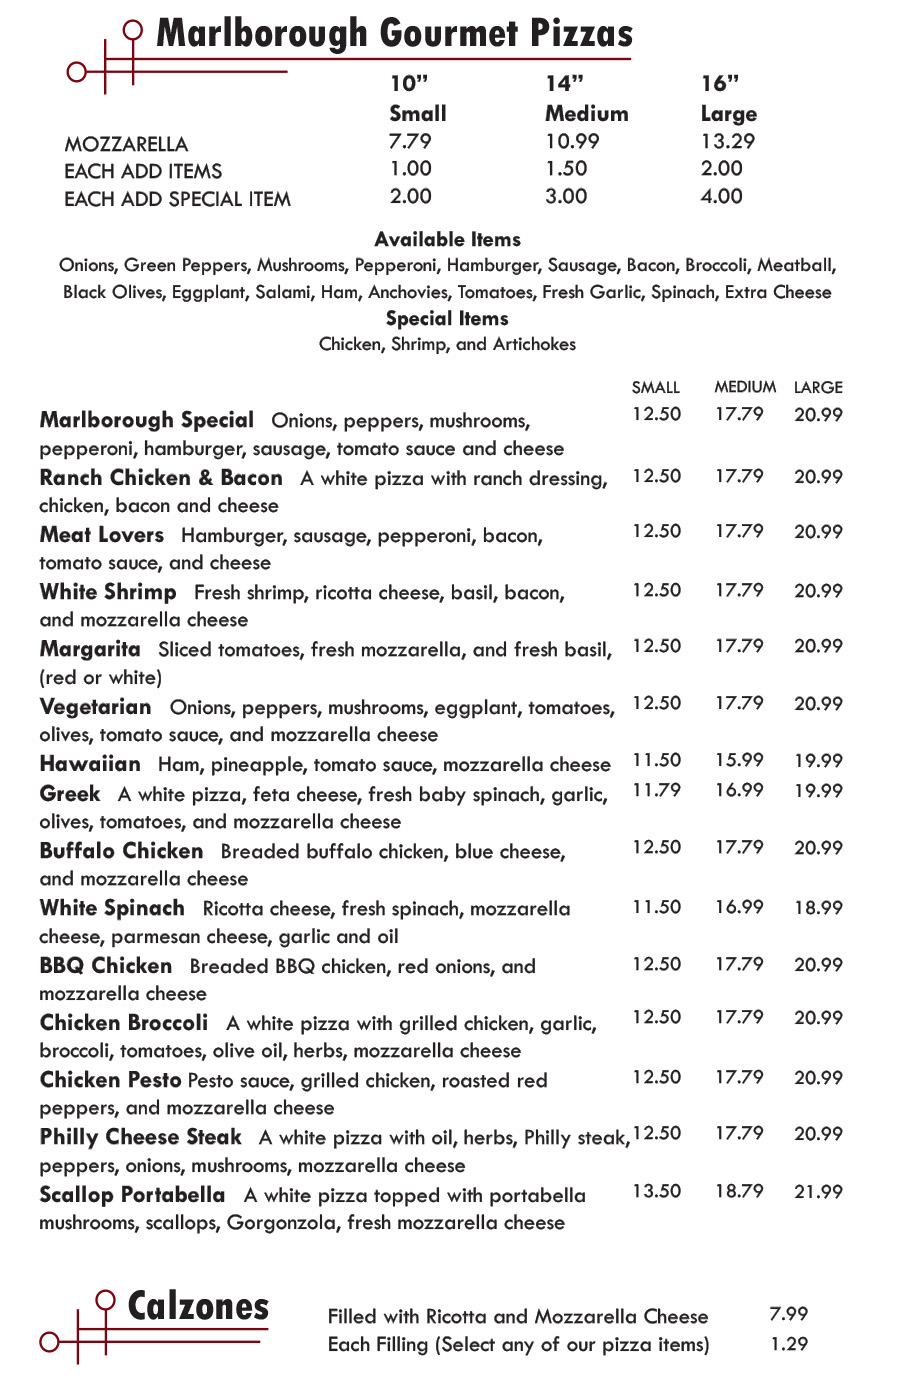 190362_take-out_5-5x10-5_menu-1